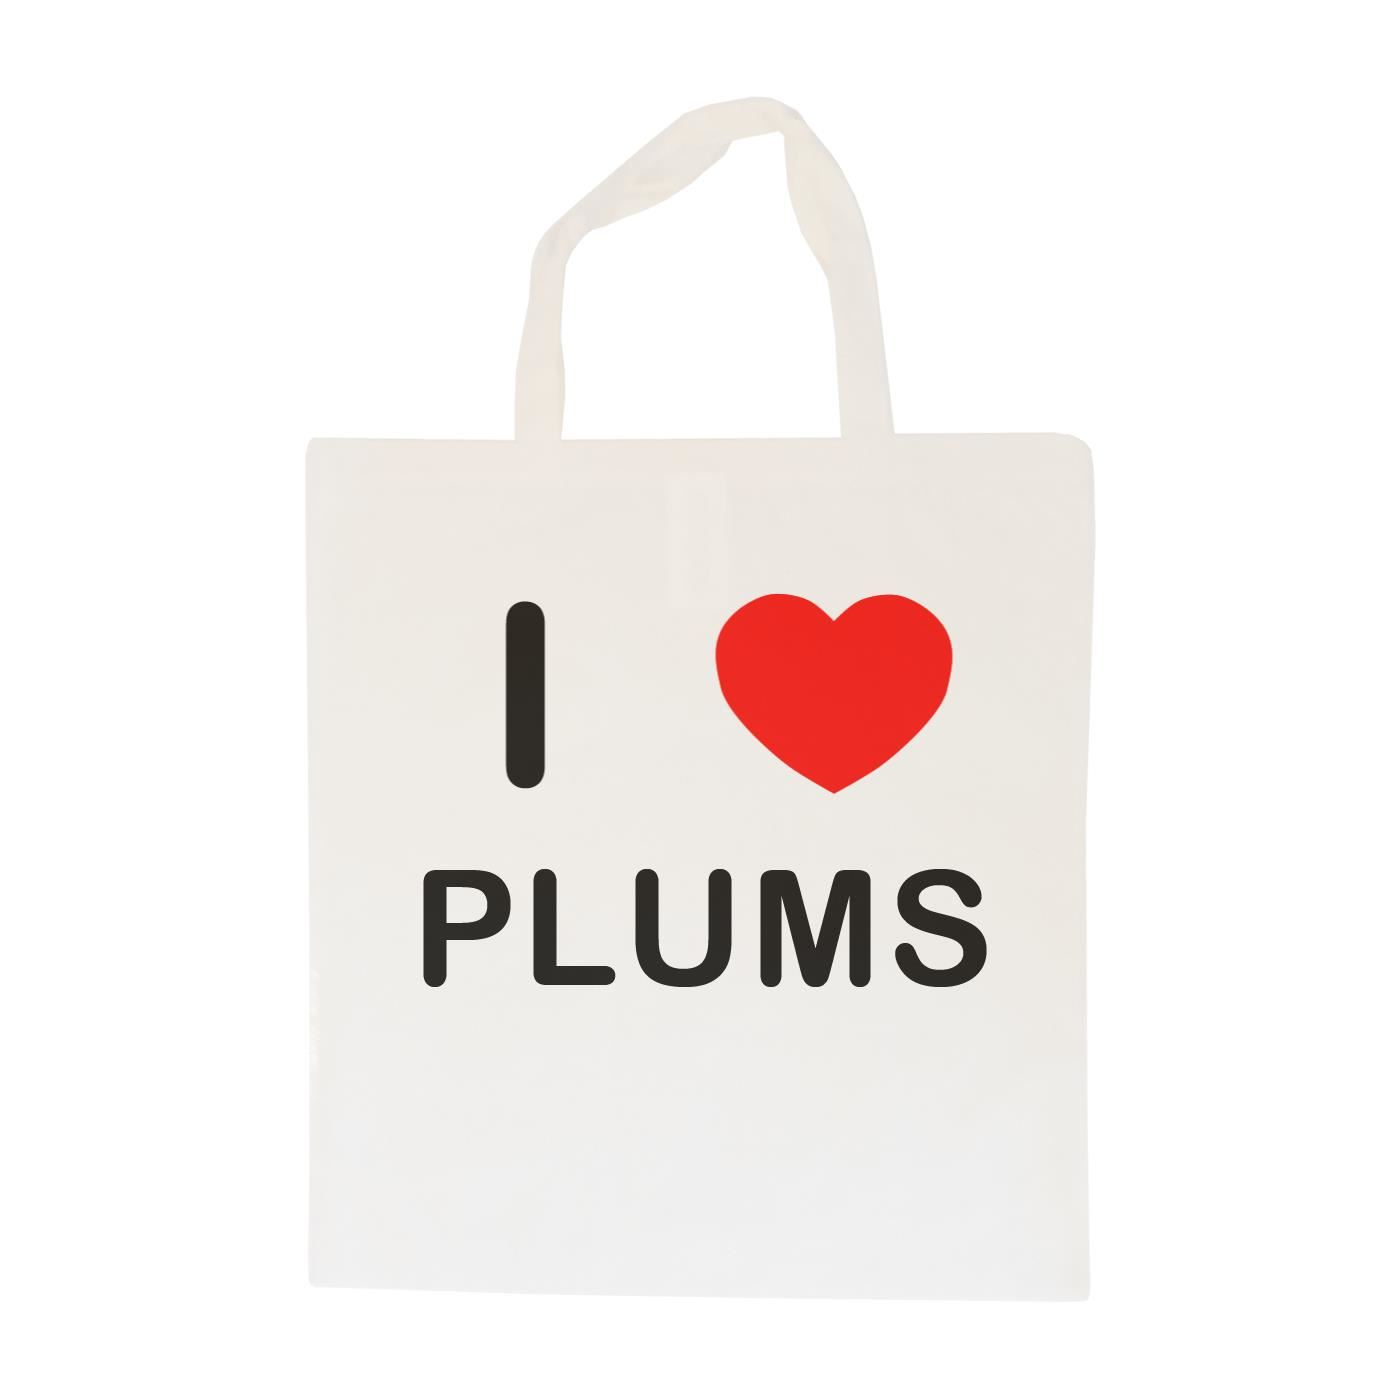 I Love Plums - Cotton Bag   Size choice Tote, Shopper or Sling